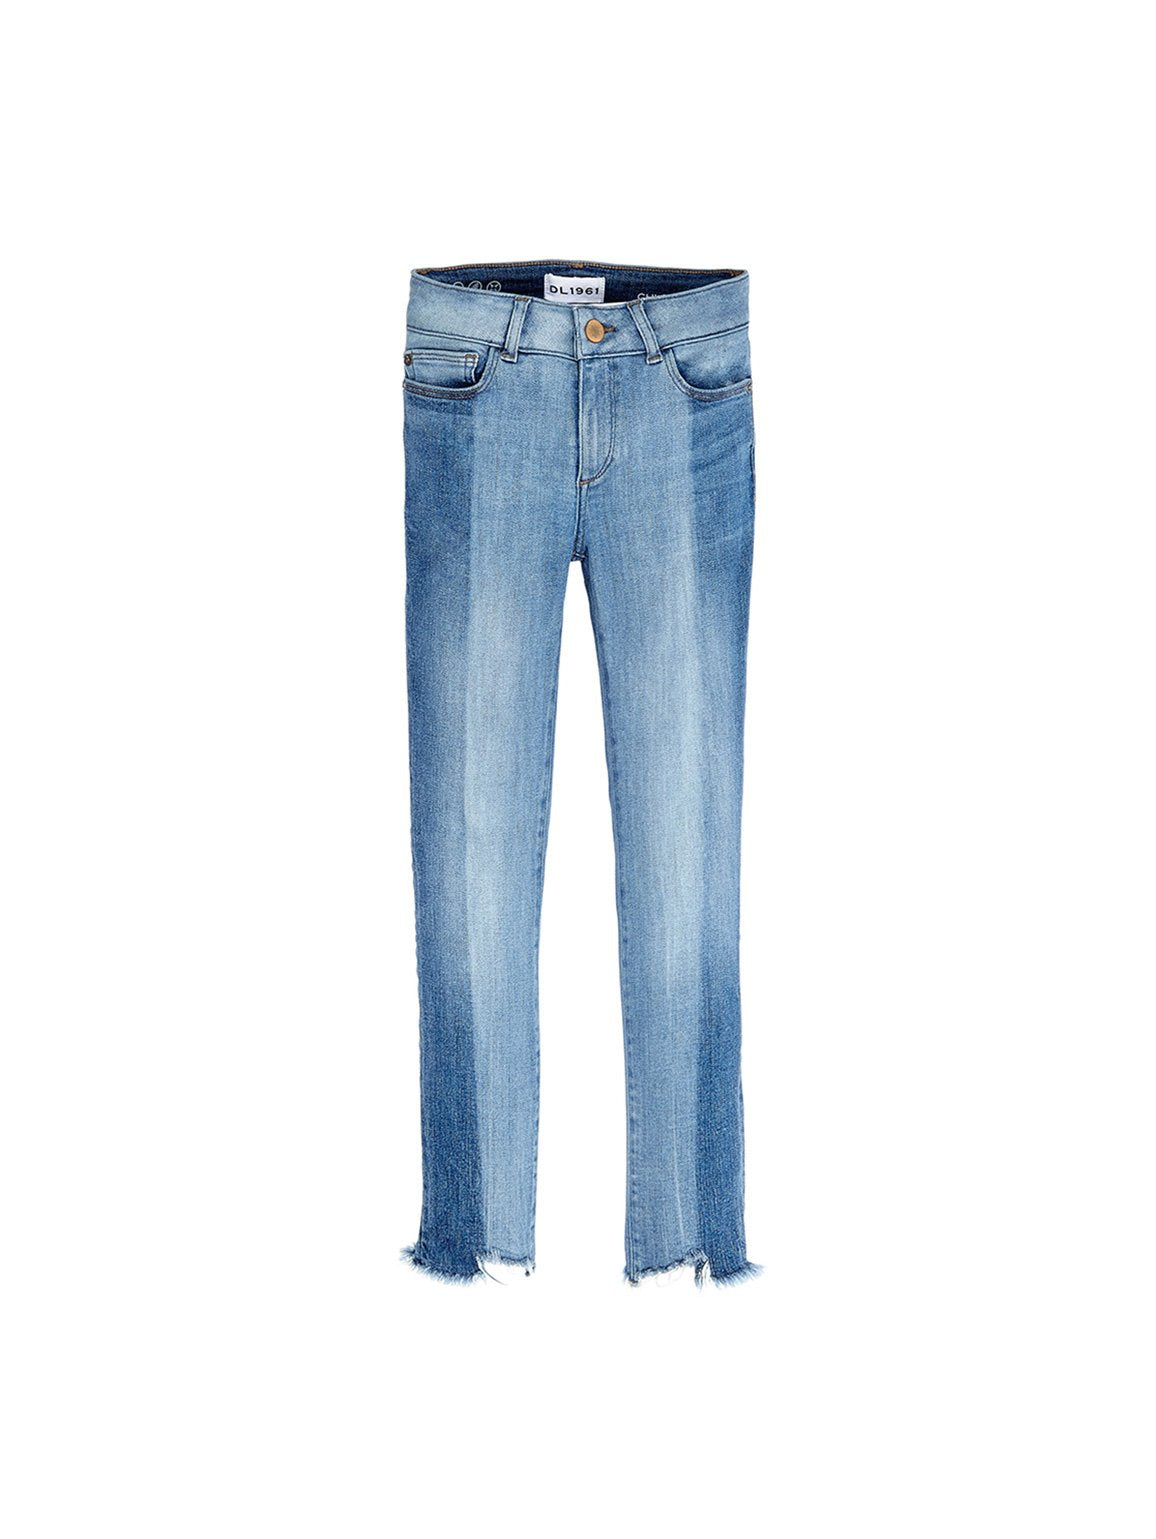 Image of Chloe Toddler Relaxed Skinny / Hollywood